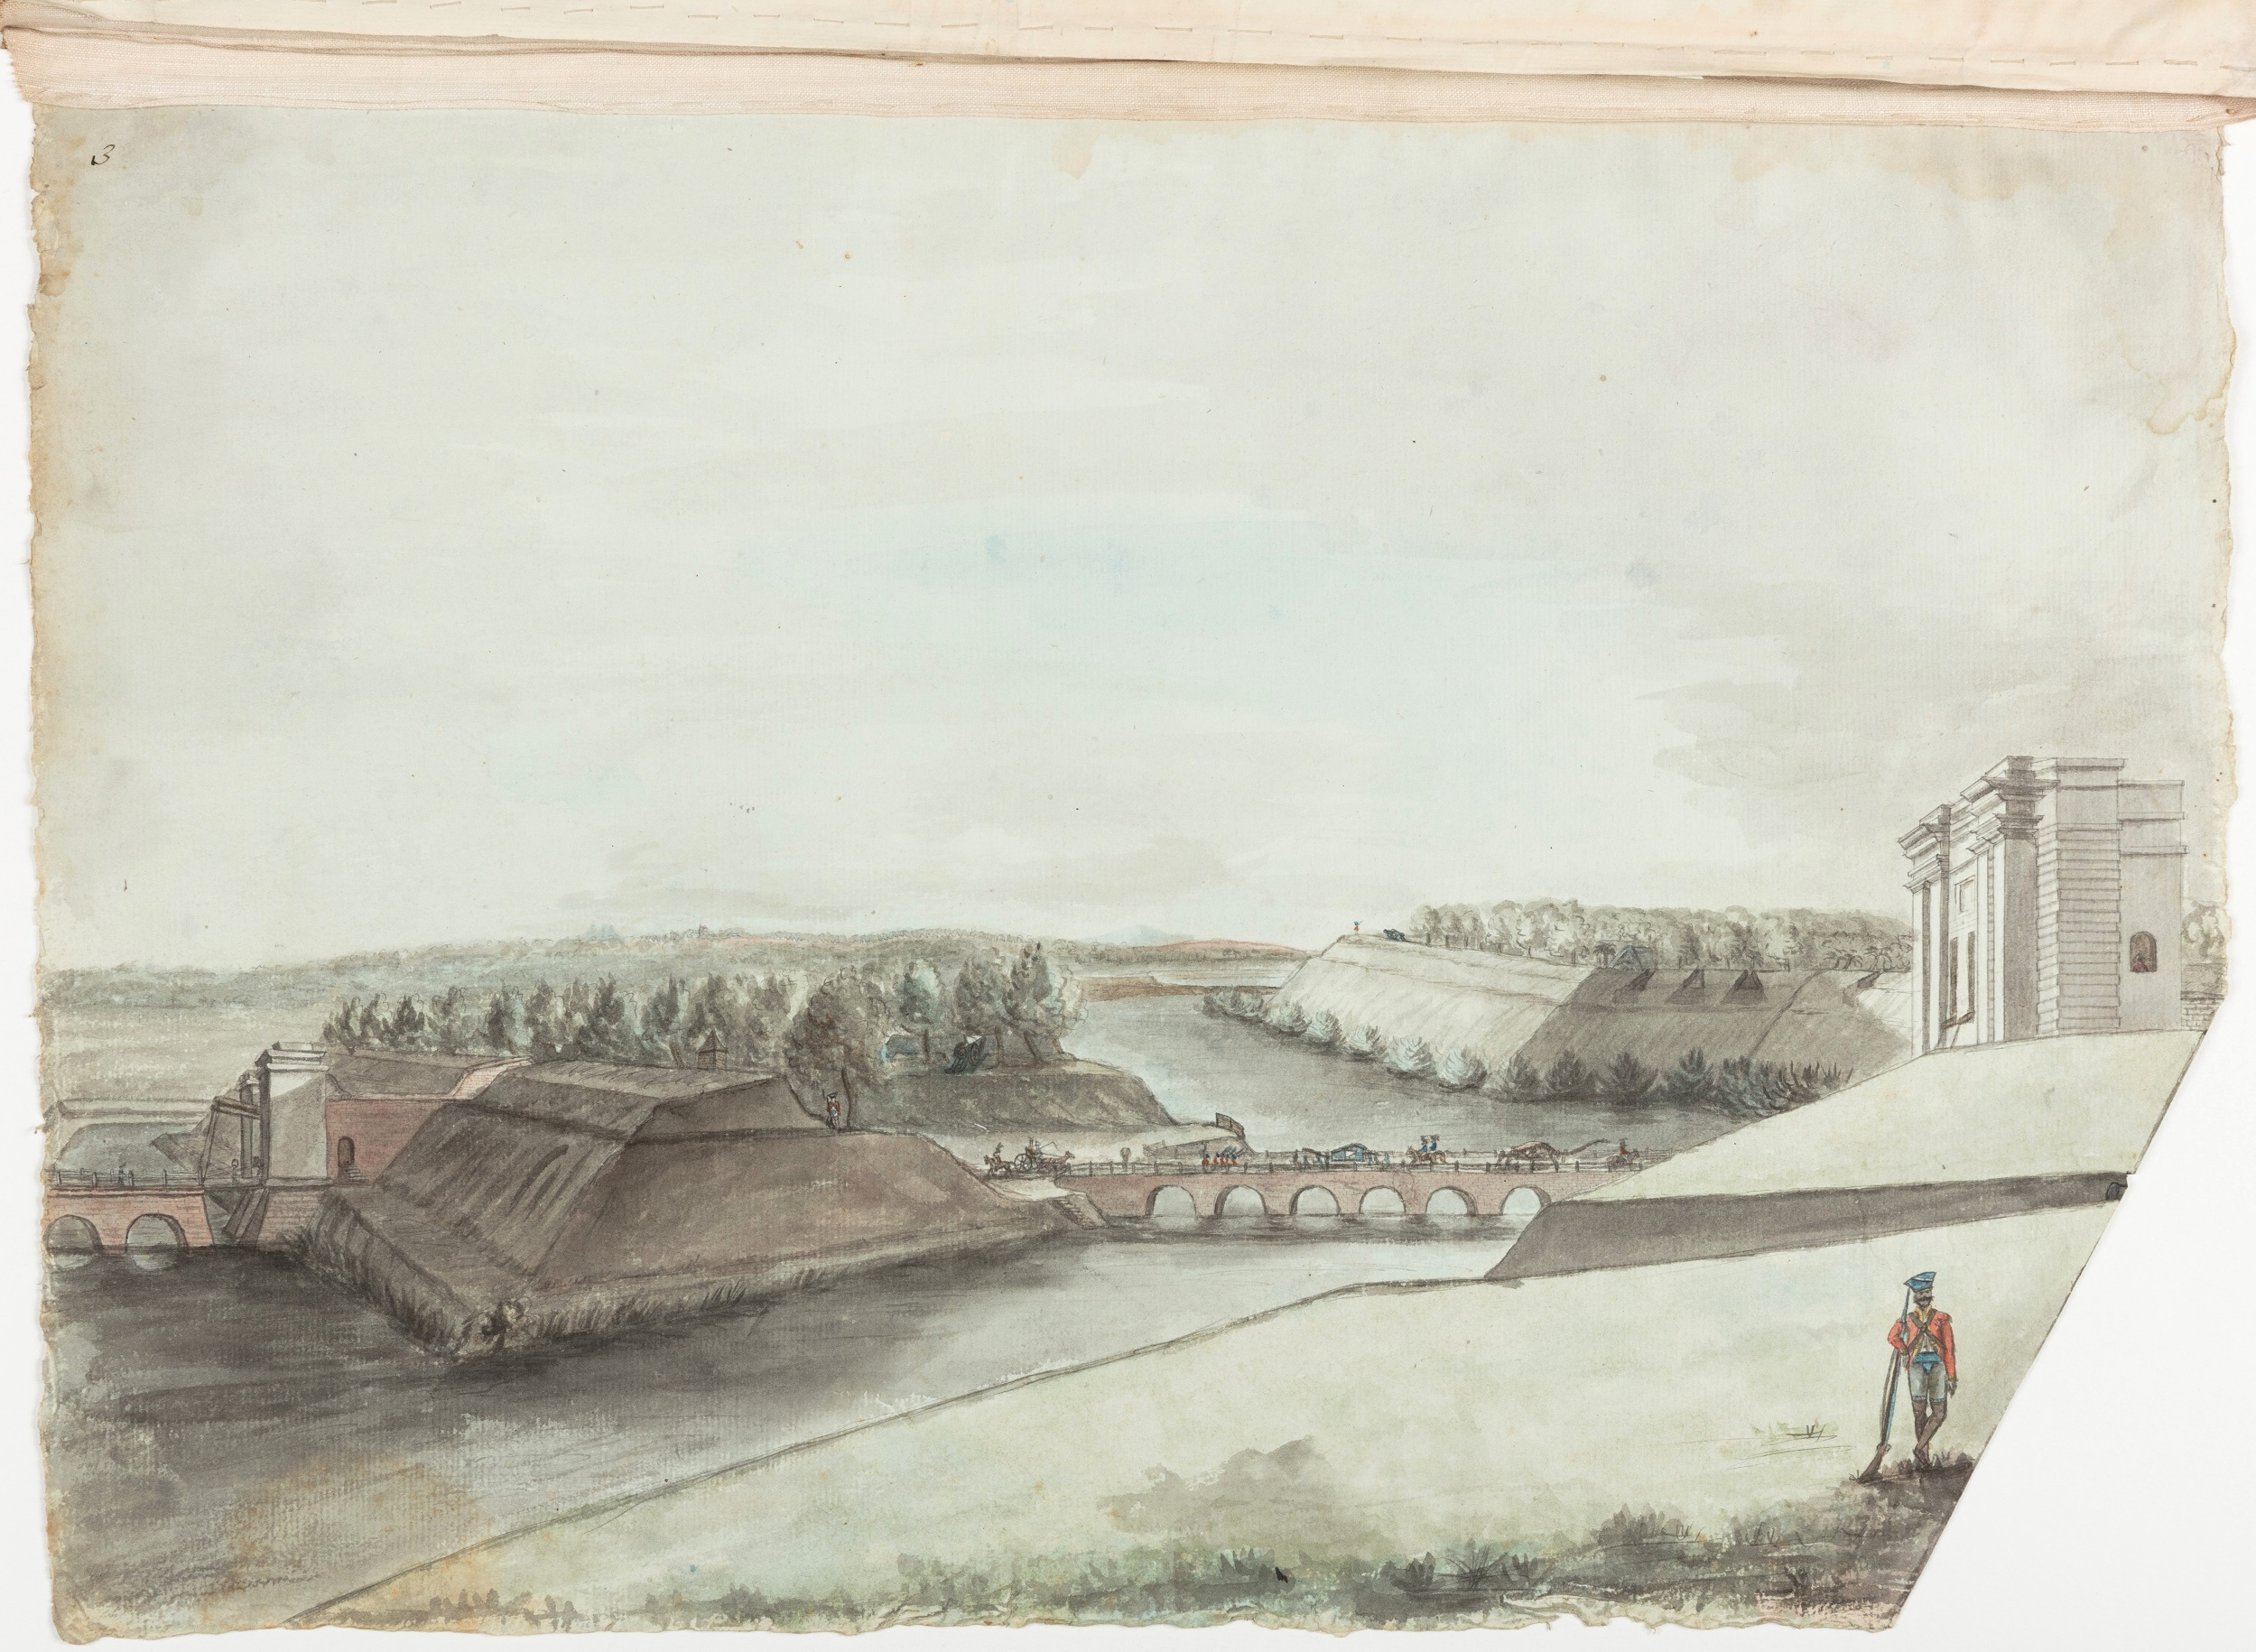 Villenore Gate of Pondicherry by day light with distant view of our Army encamped on the Red Hills – from Parapet / Thomas Marriott